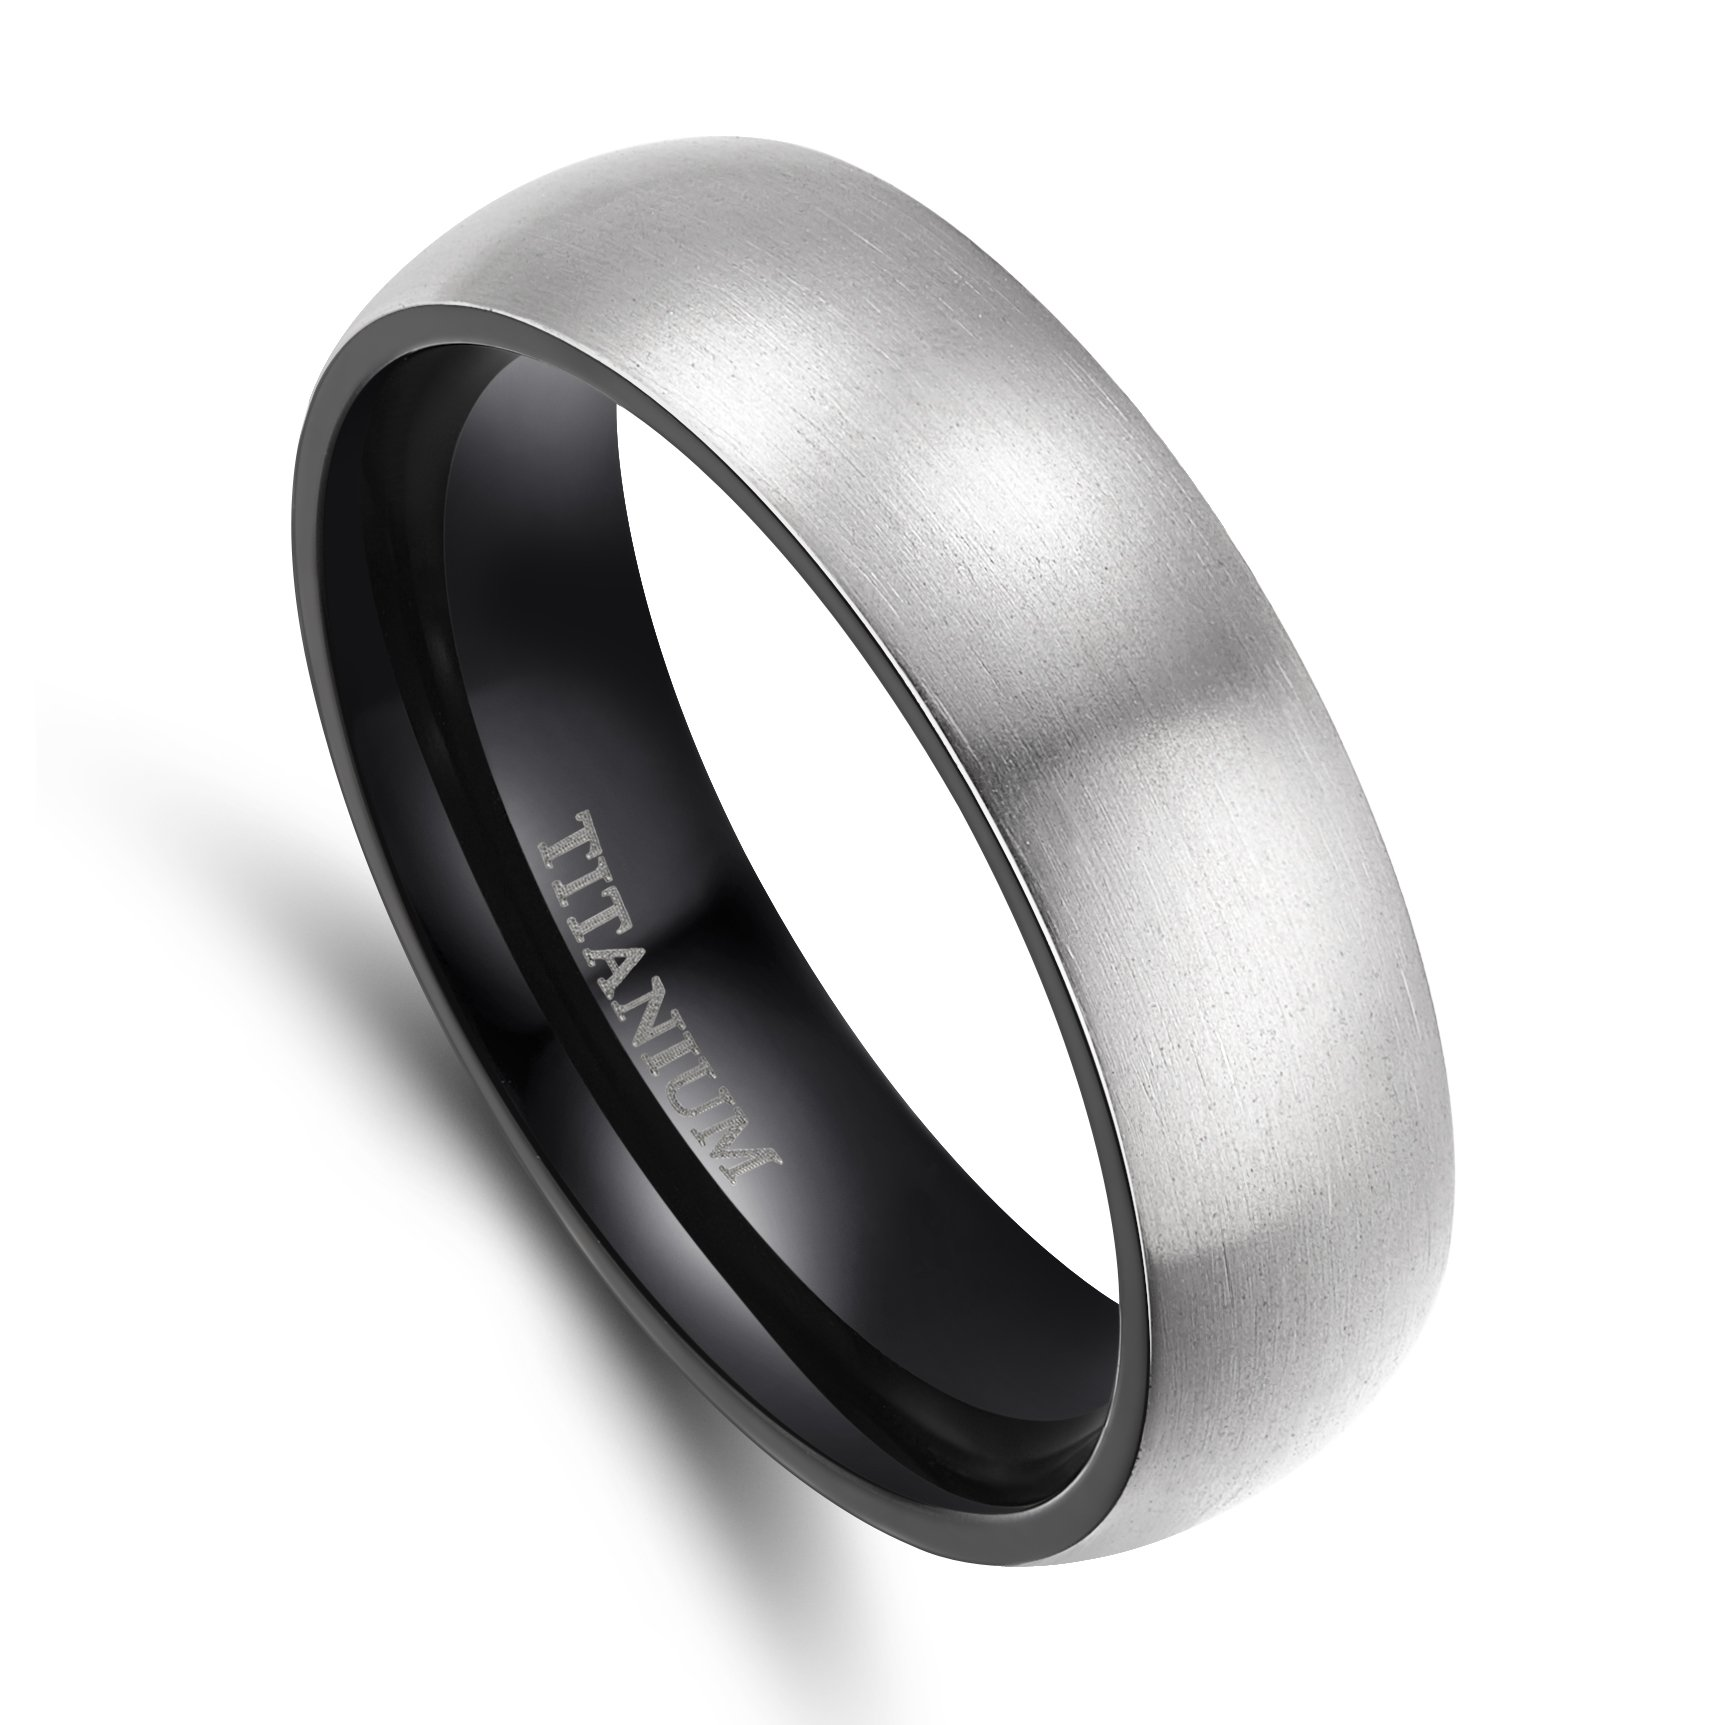 TIGRADE 6mm/8mm Men's Titanium Ring Brushed Dome Wedding Band Comfort Fit Size 4-15